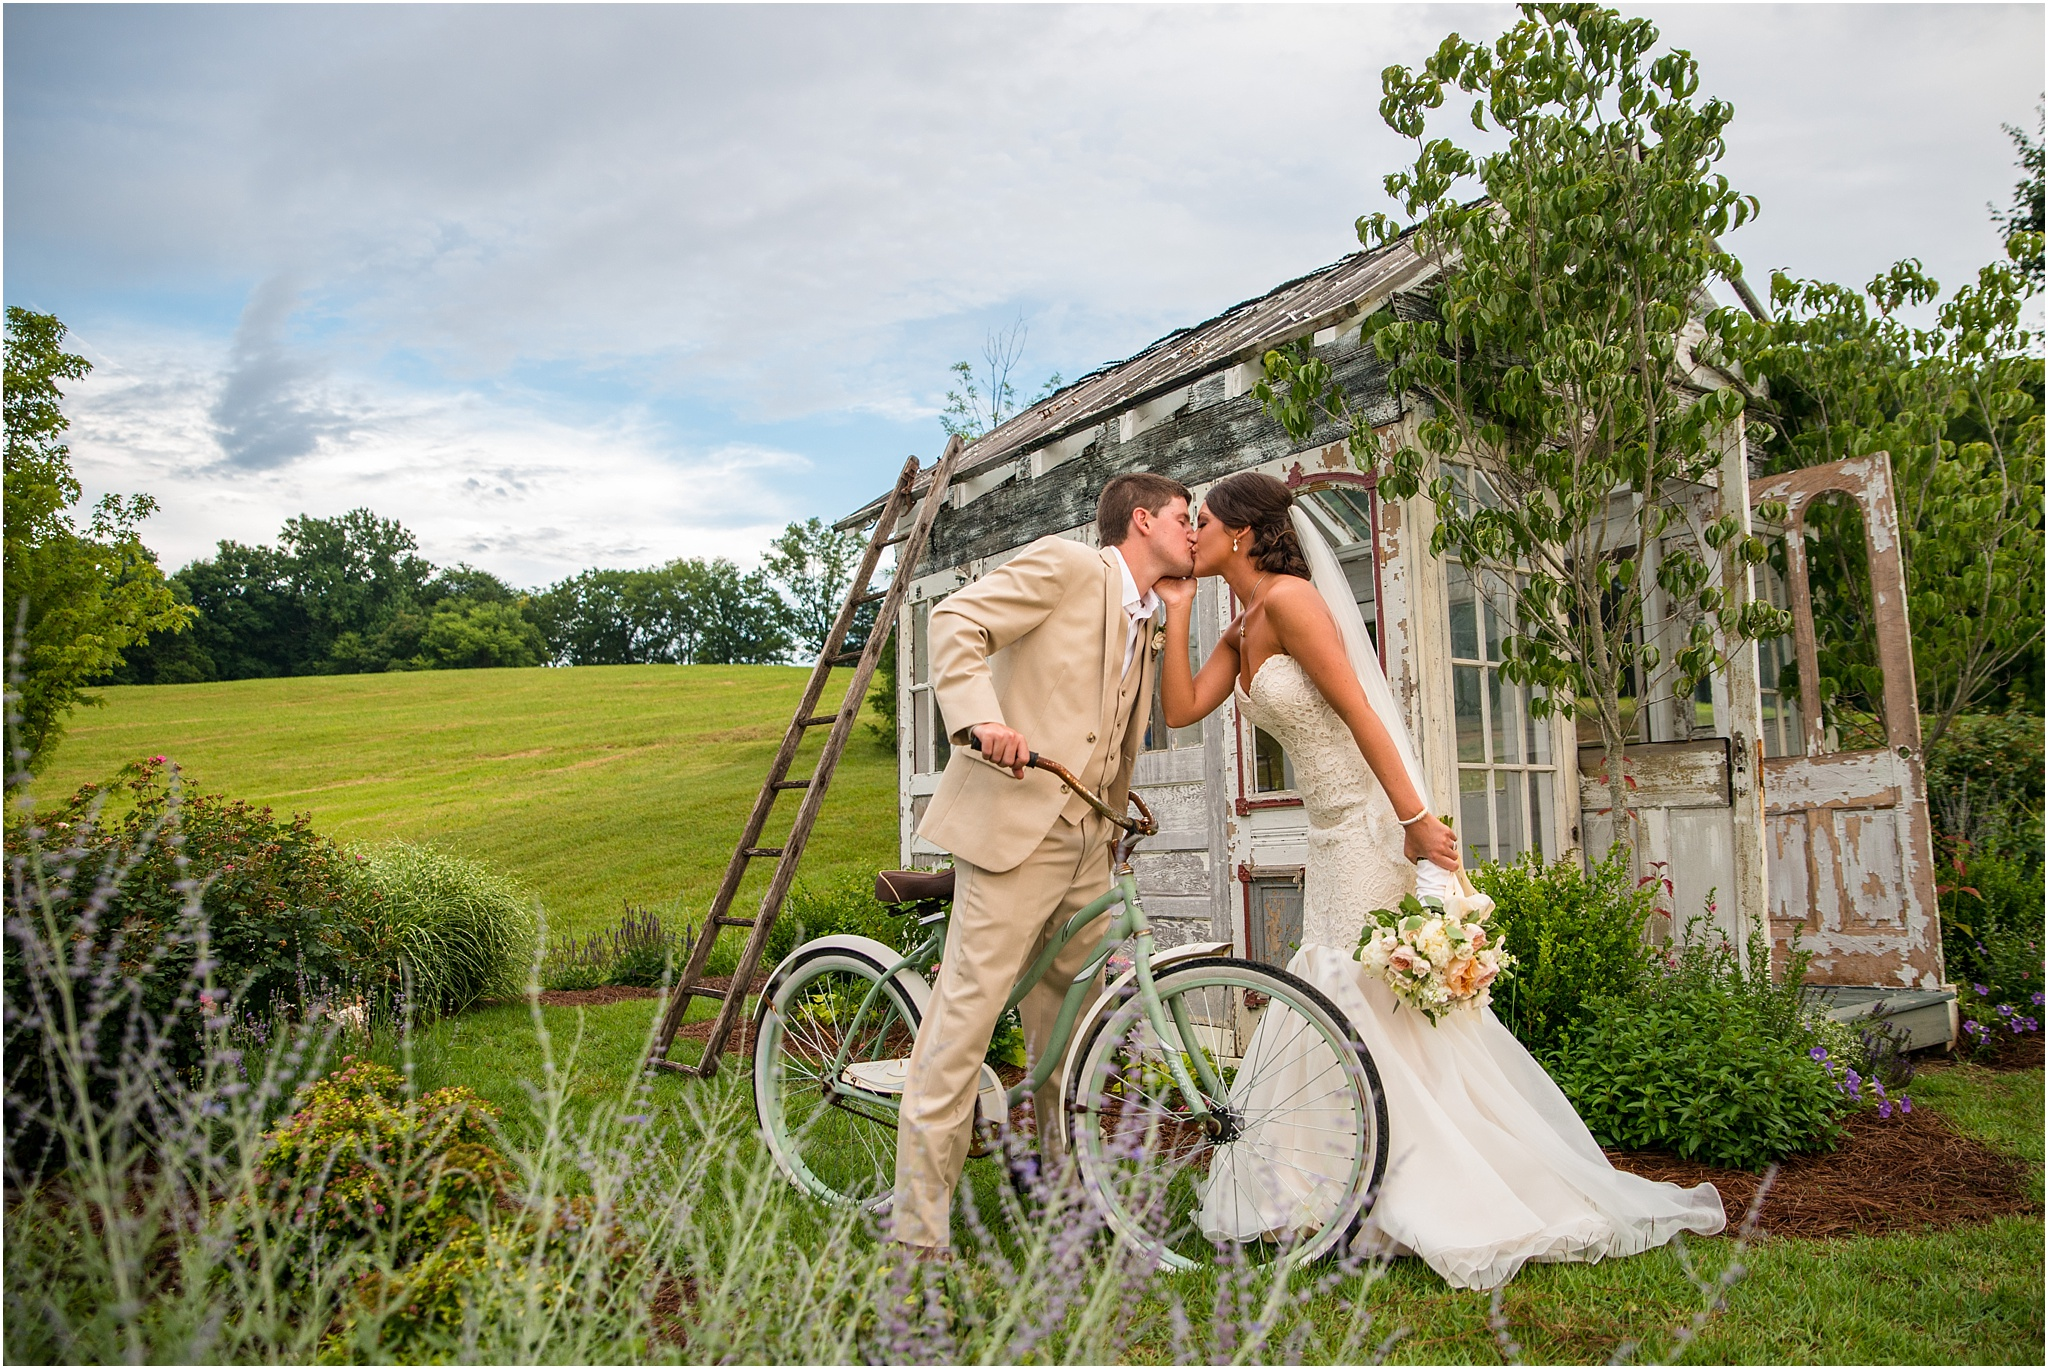 Greg Smit Photography Nashville wedding photographer Mint Springs Farm 20